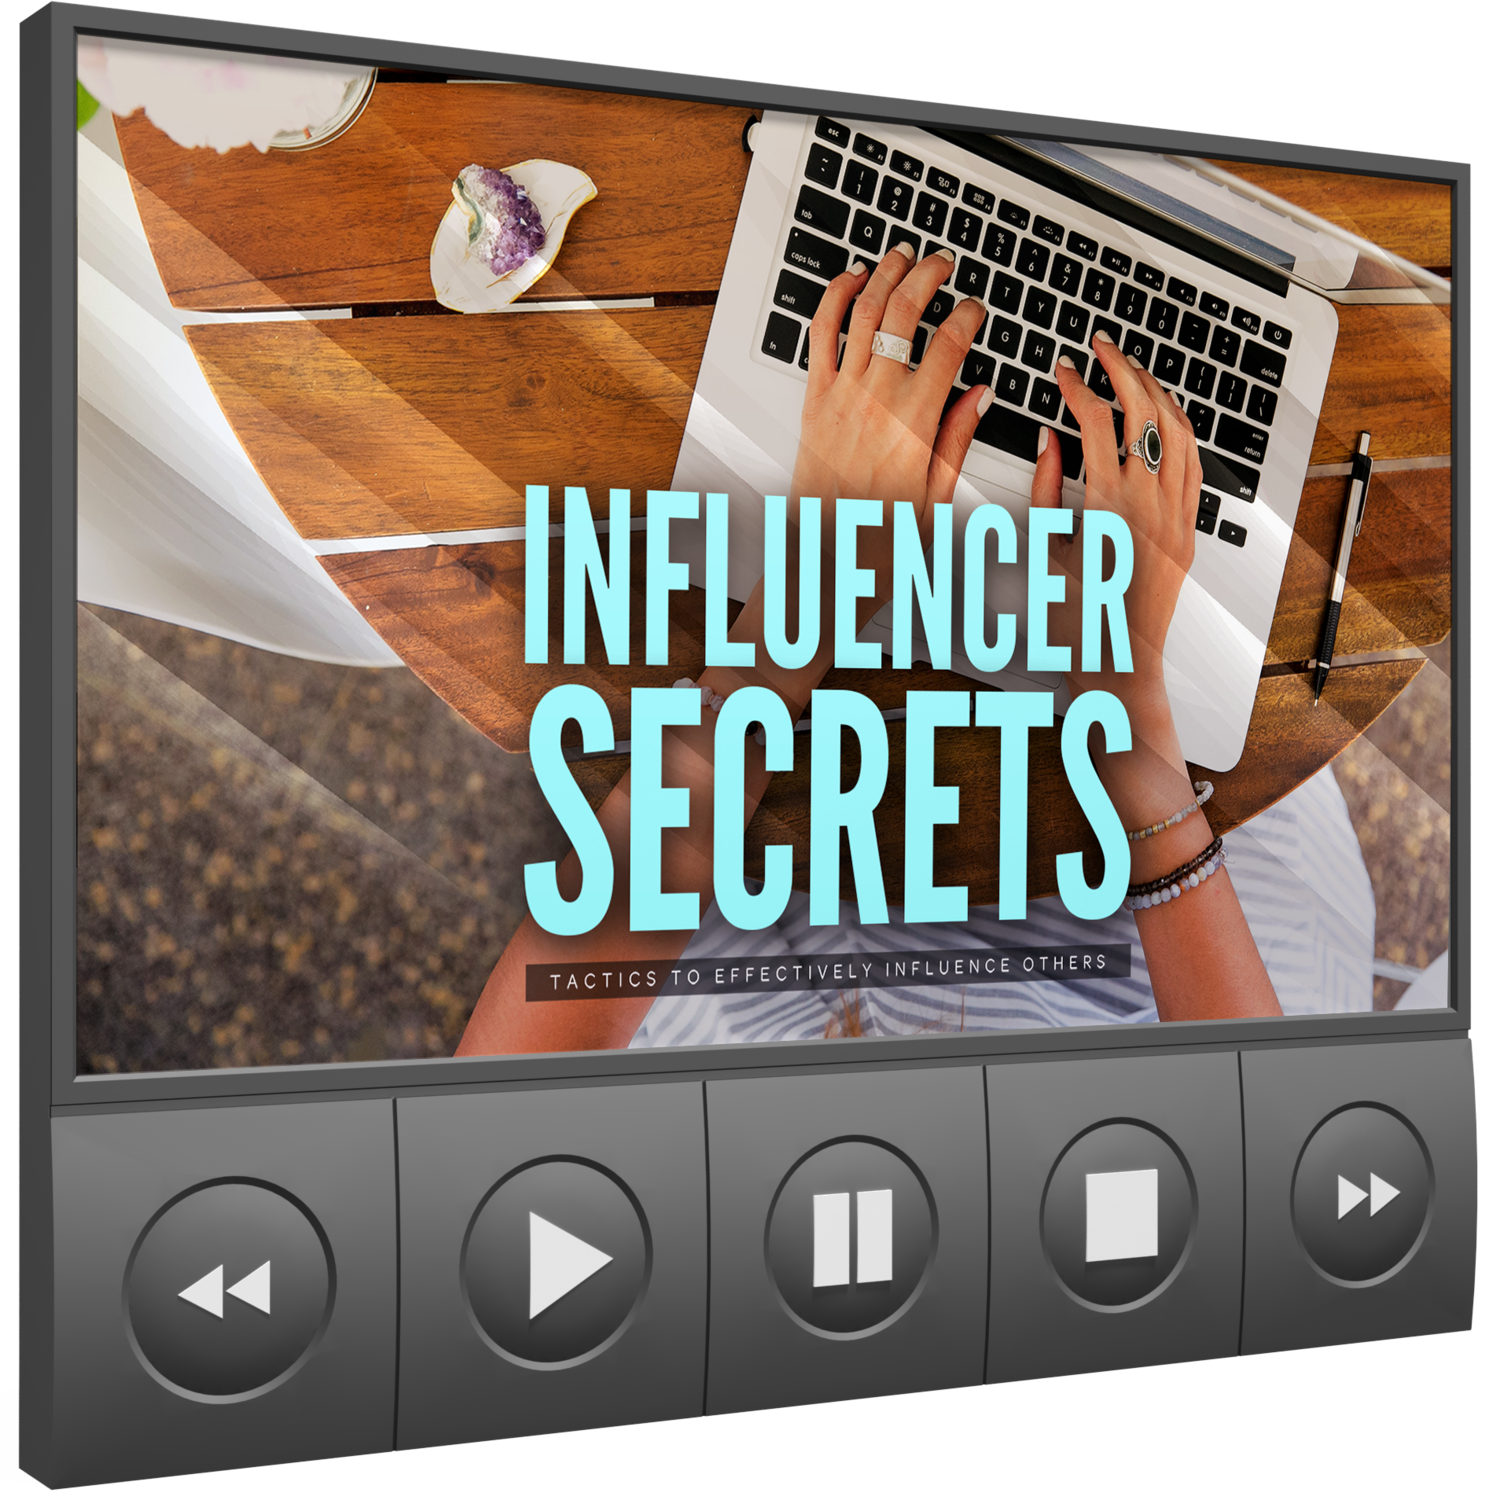 What is the Influencer Secrets Video